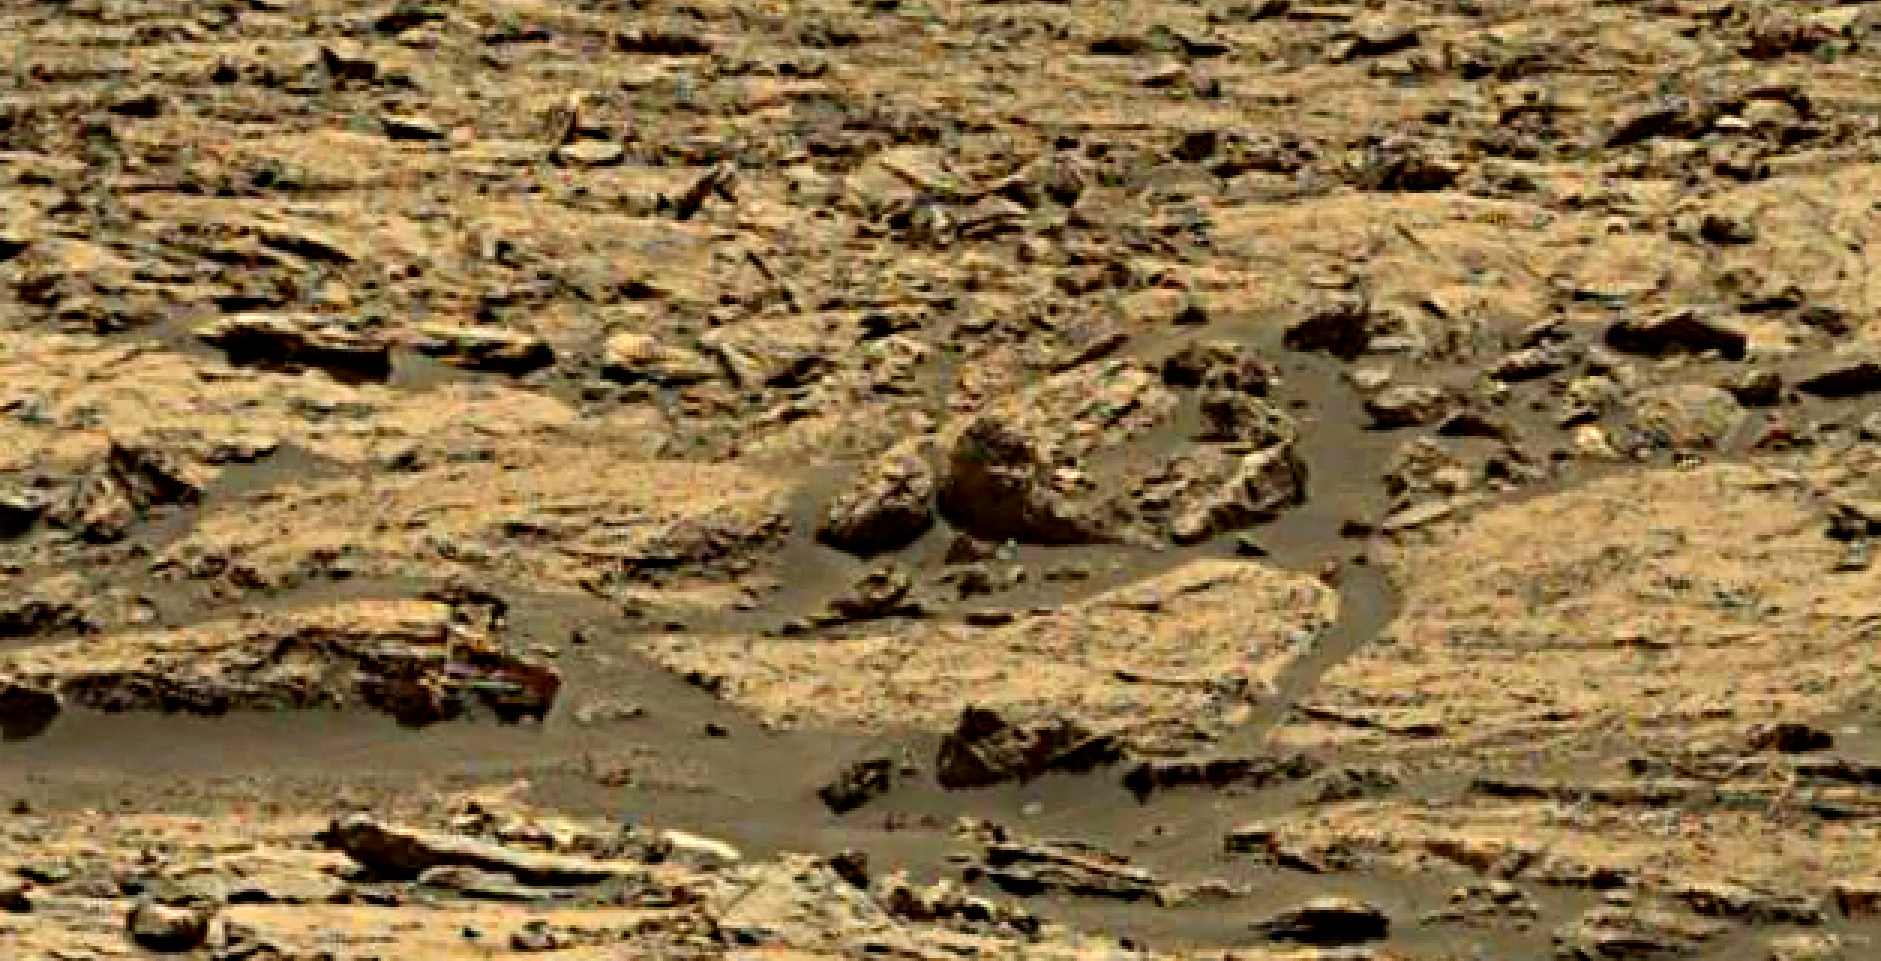 mars sol 1428 anomaly artifacts 3 was life on mars